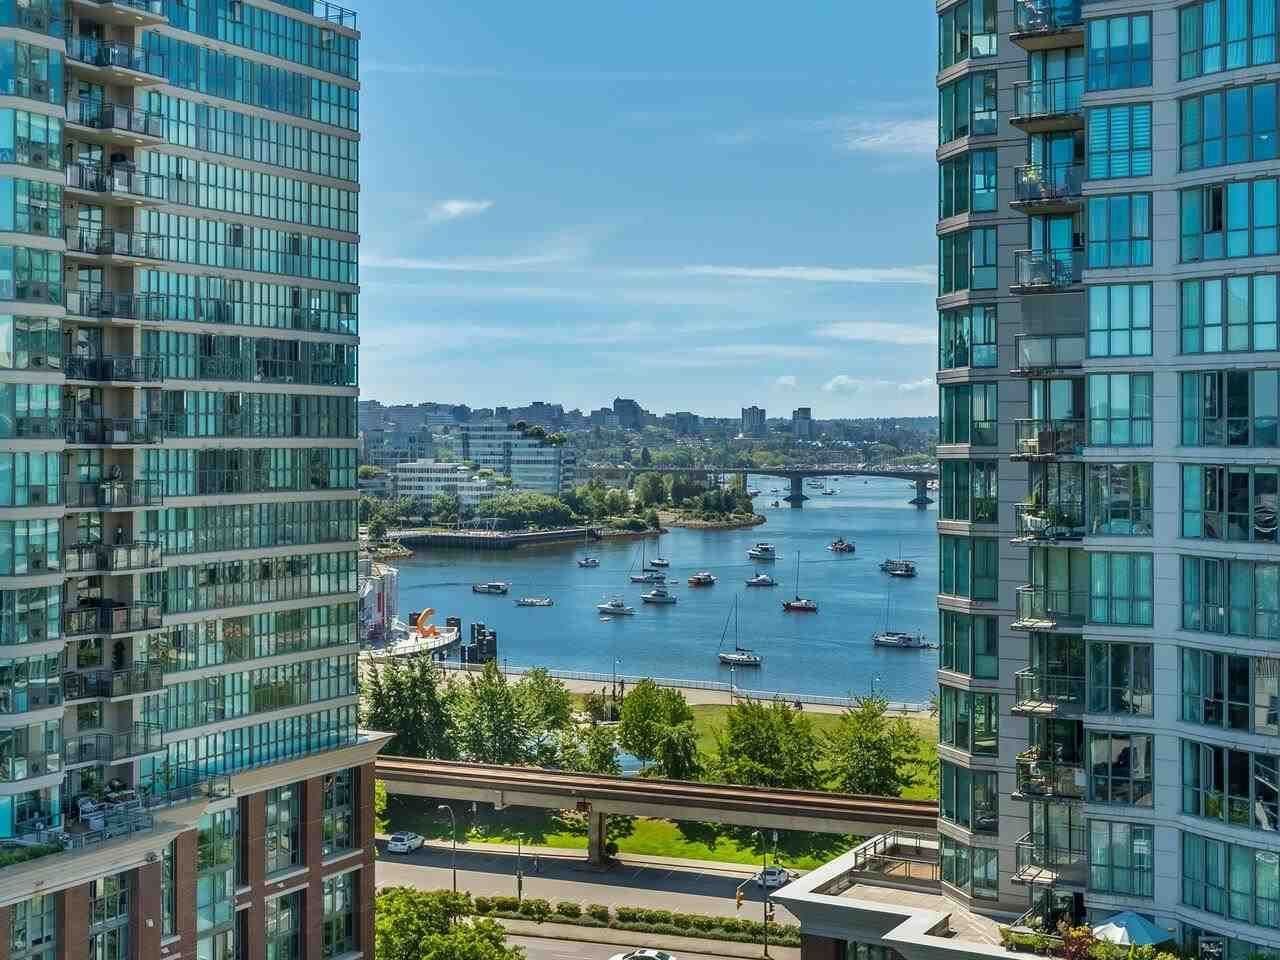 """Main Photo: 1301 189 NATIONAL Avenue in Vancouver: Downtown VE Condo for sale in """"SUSSEX"""" (Vancouver East)  : MLS®# R2590311"""